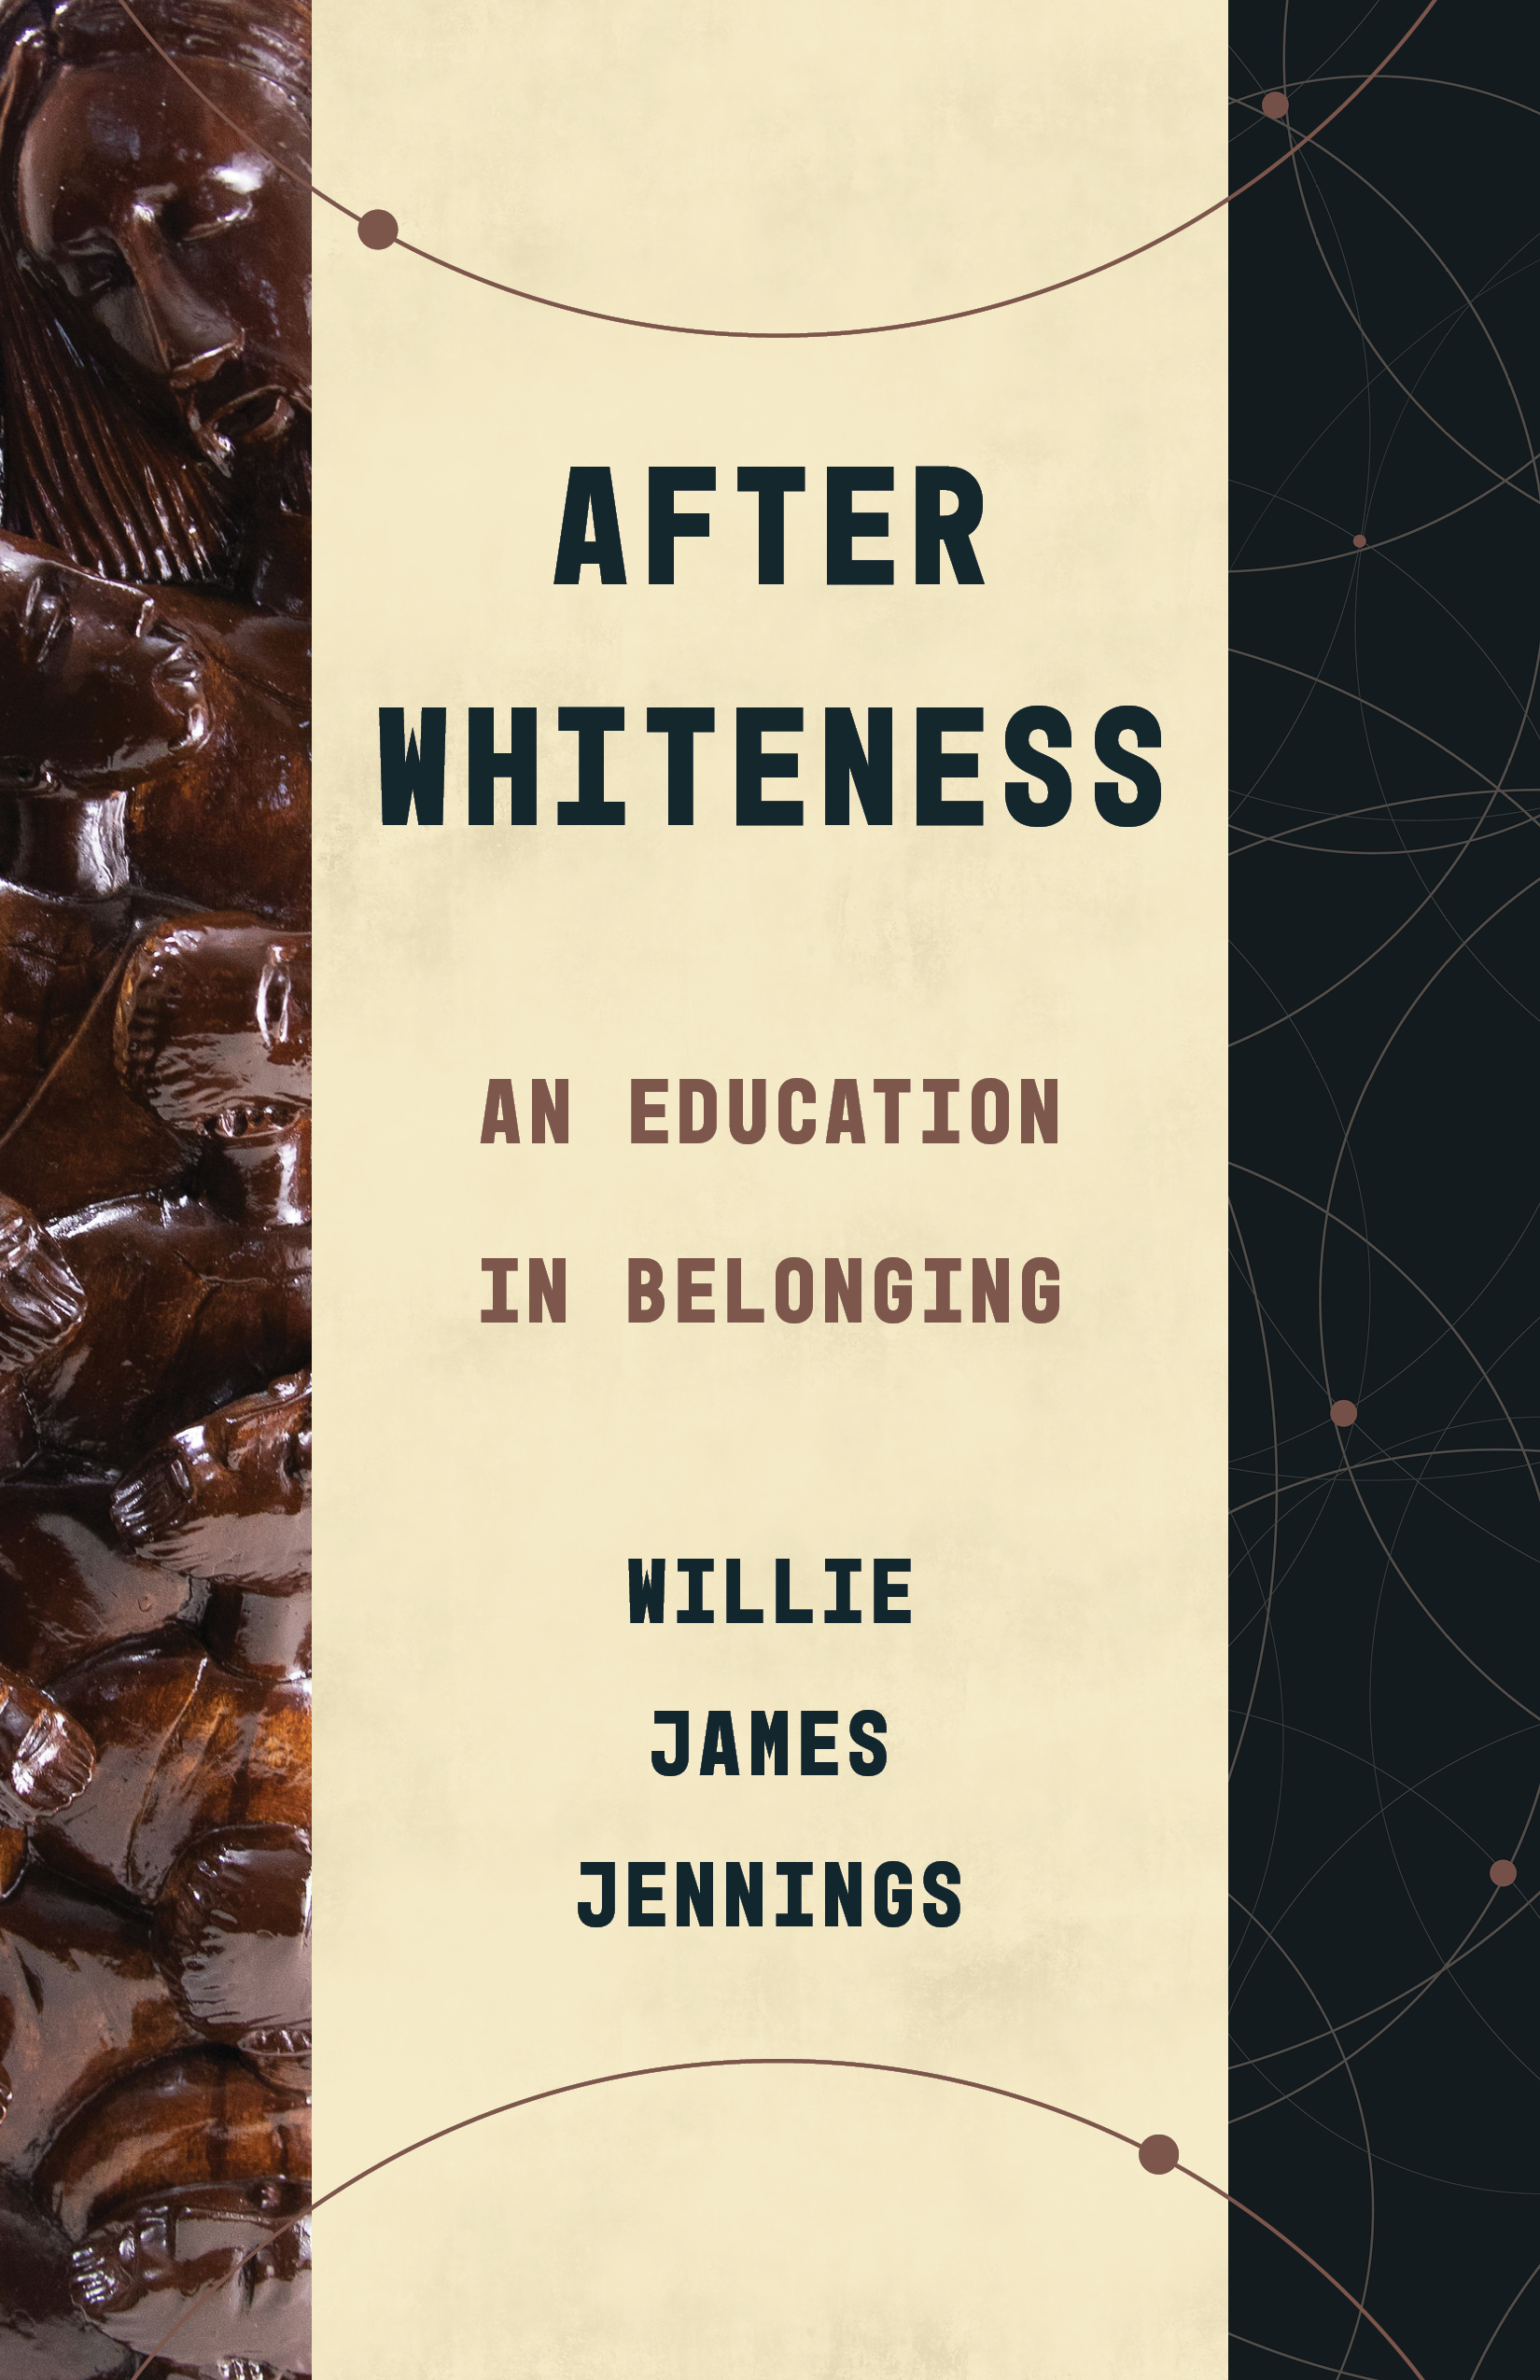 After Whiteness: An Education in Belonging